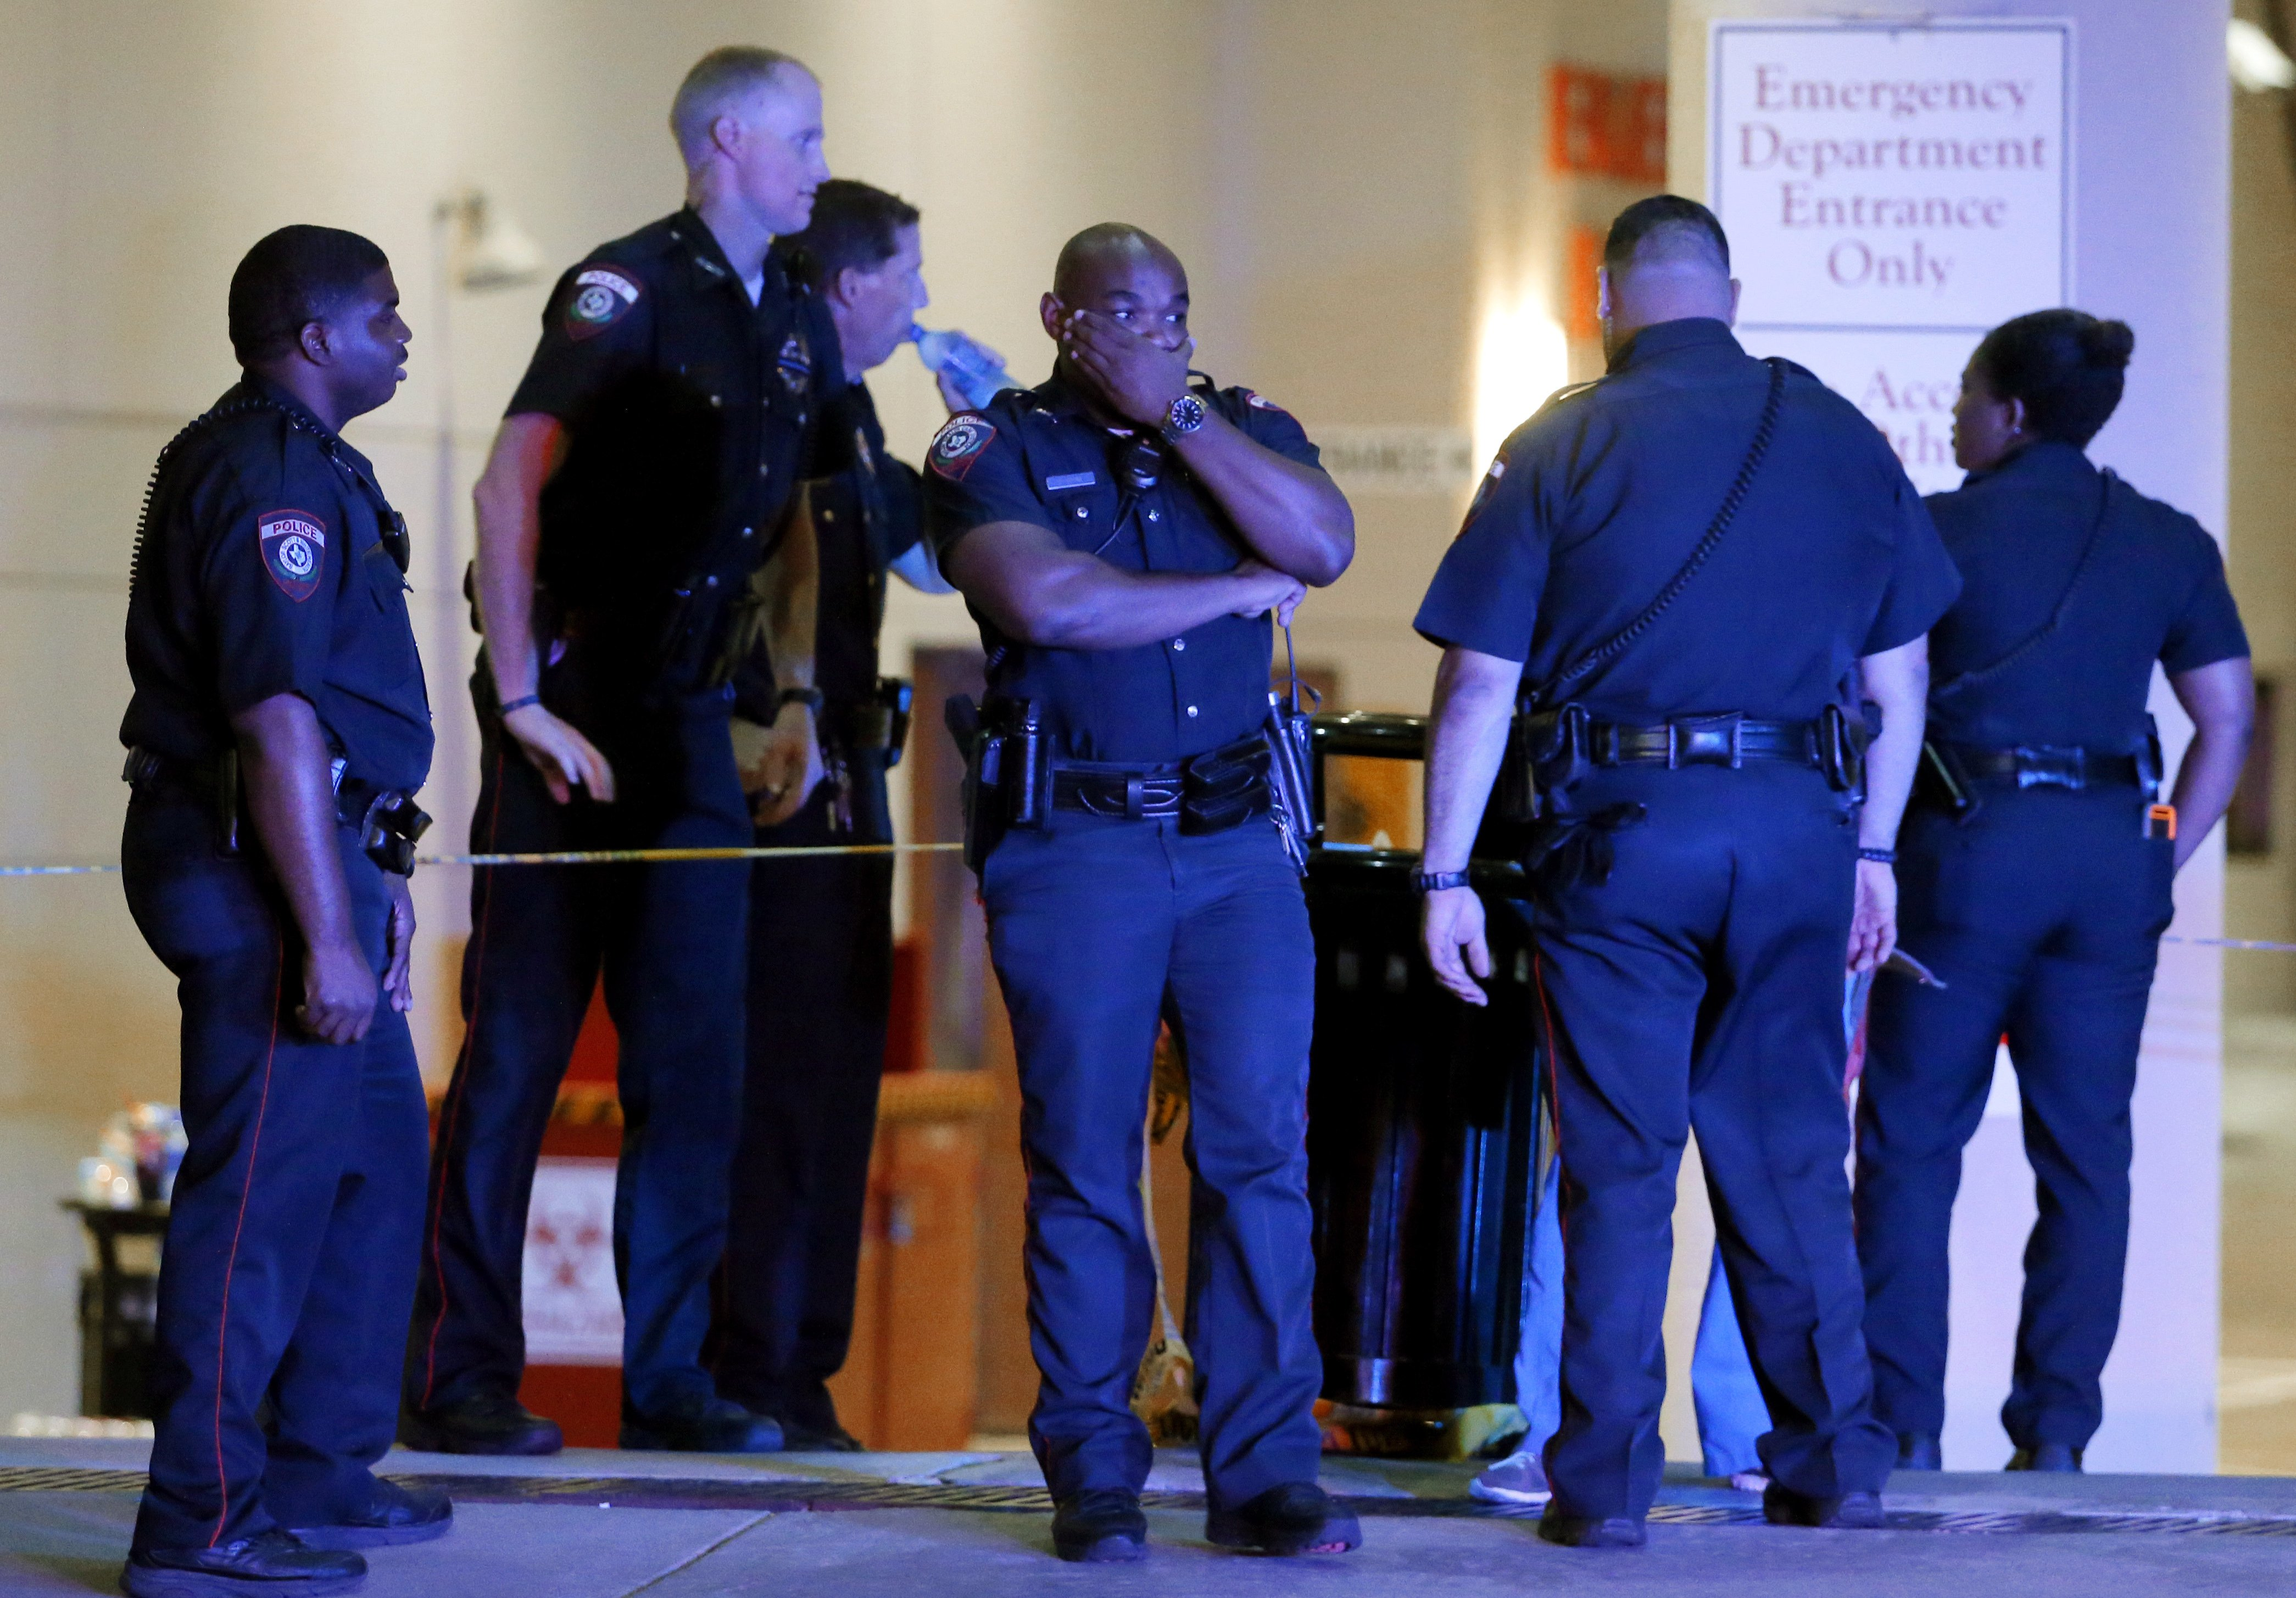 'Horrified': Latinos Denounce Shootings of Dallas Police, Call for Peace